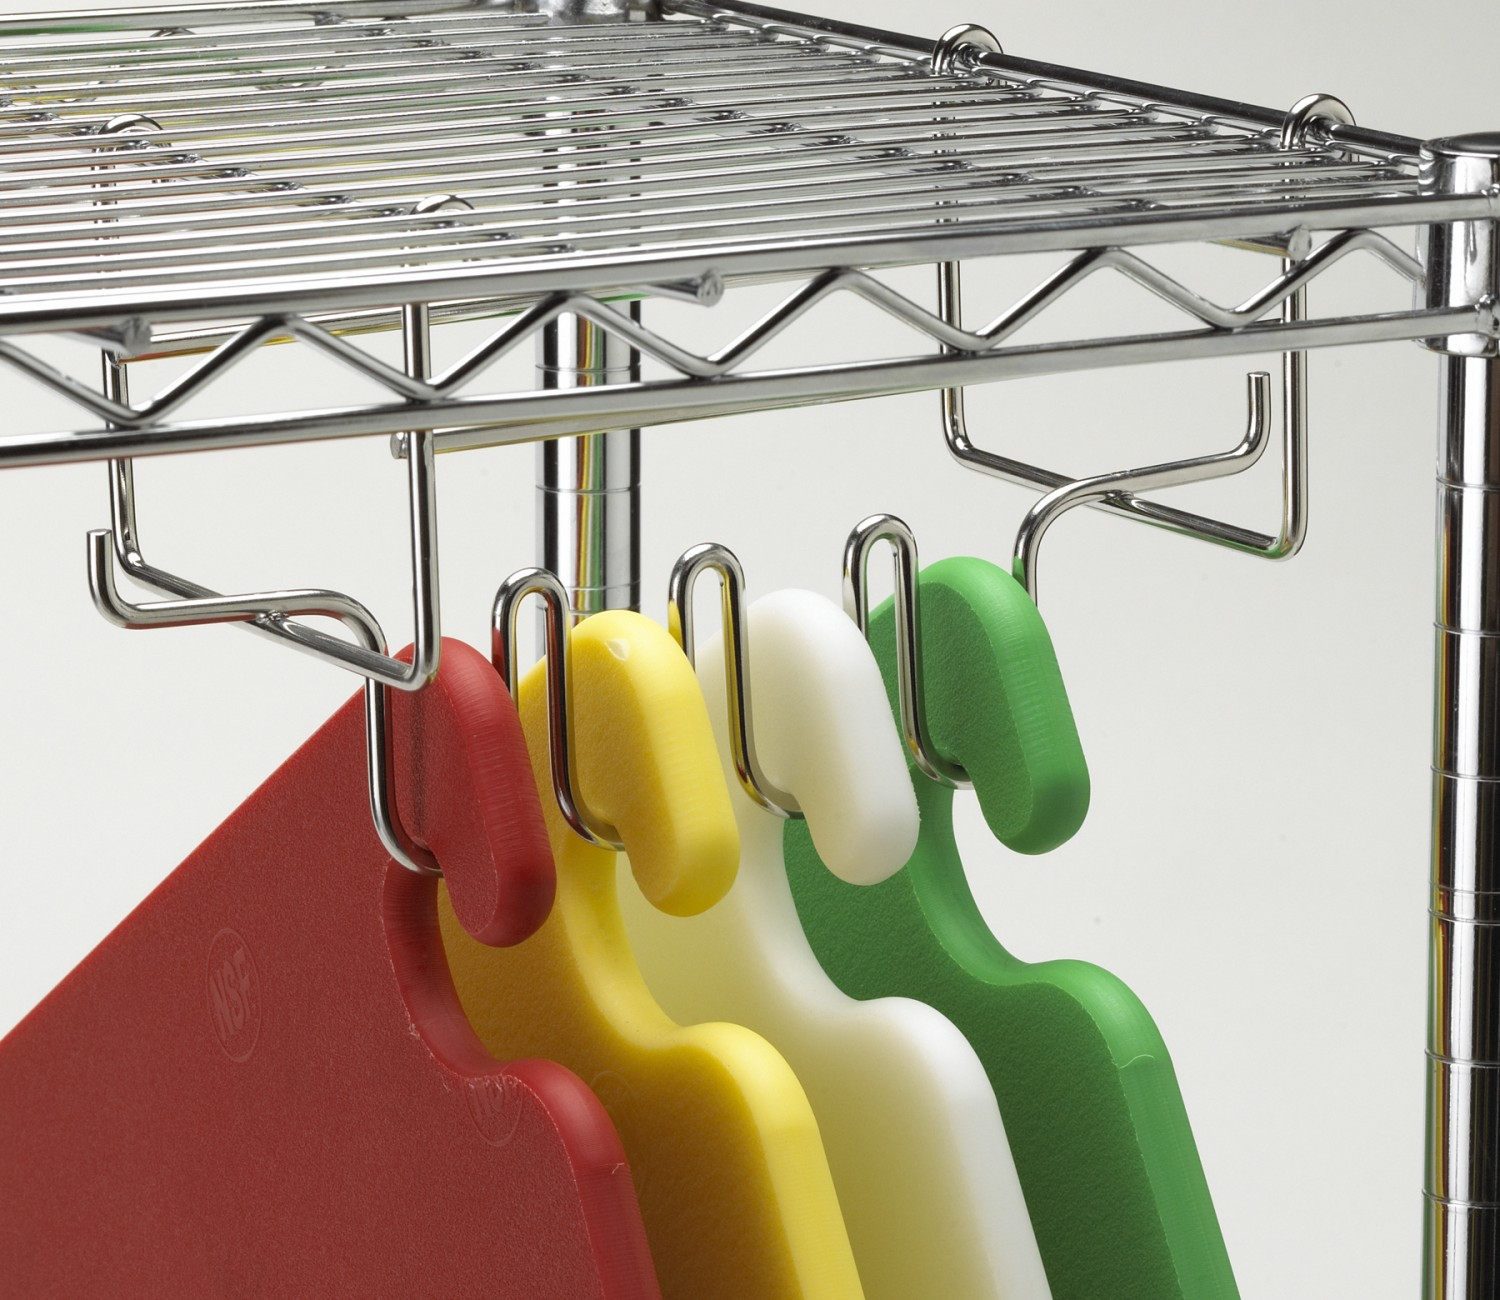 San Jamar CNCRK Cut-N-CarryCutting Board Hanging Rack